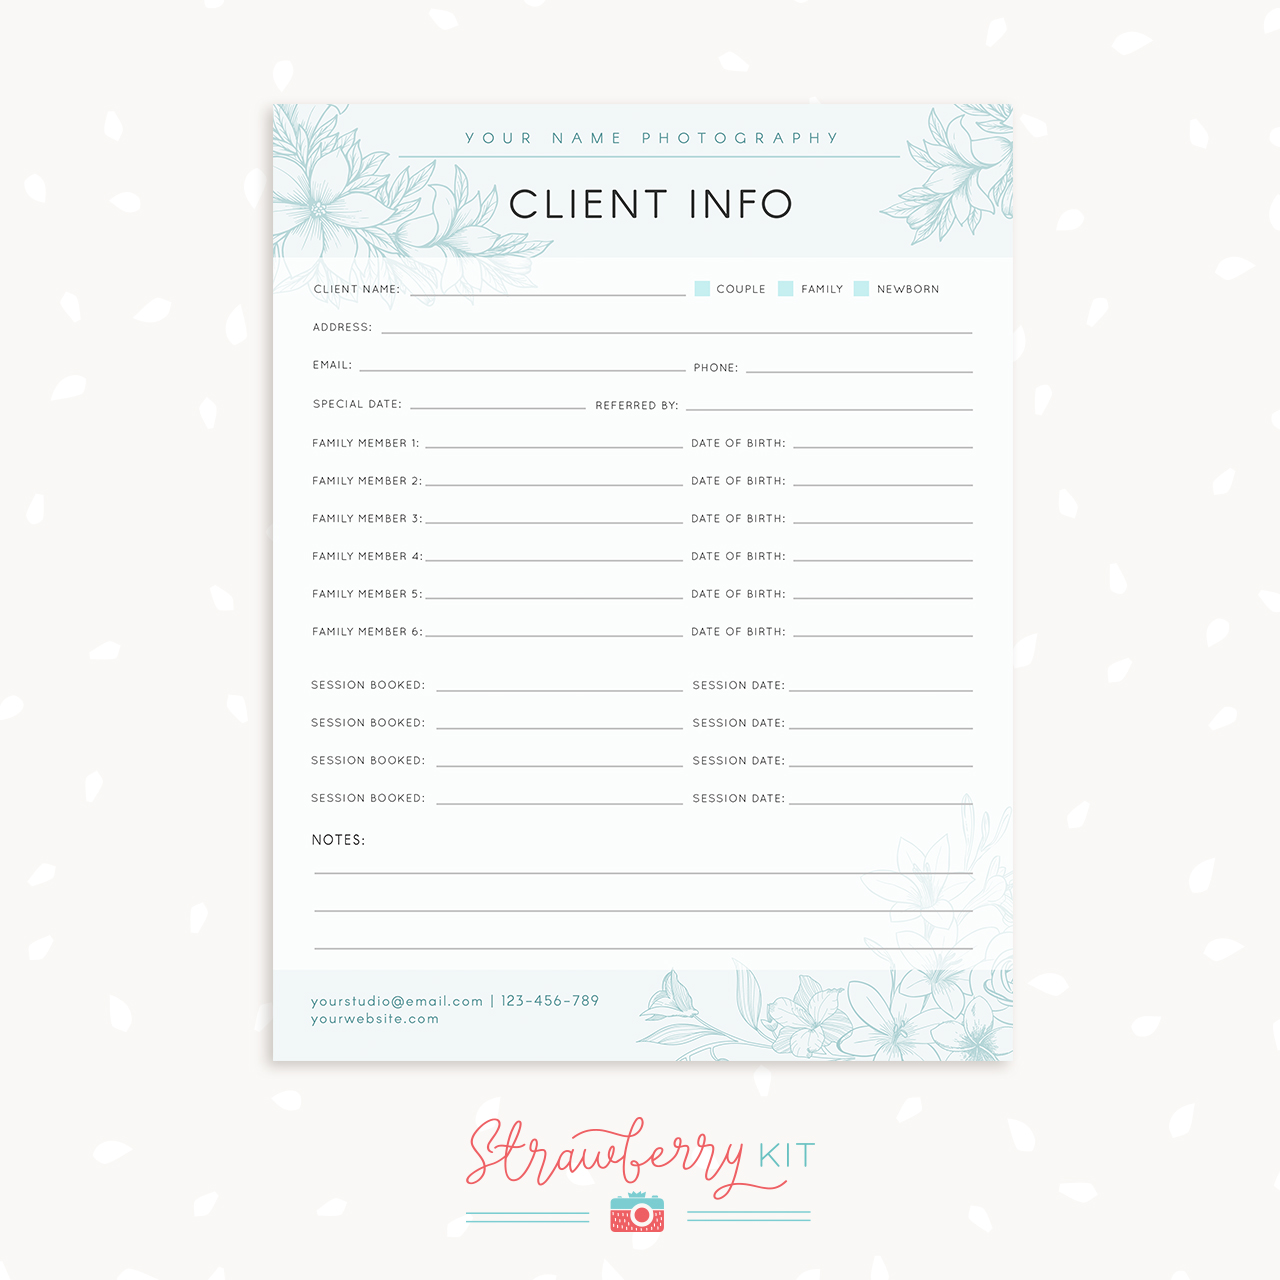 Client Information Template For Photographers. Client Information Form  Photography  Client Information Form Template